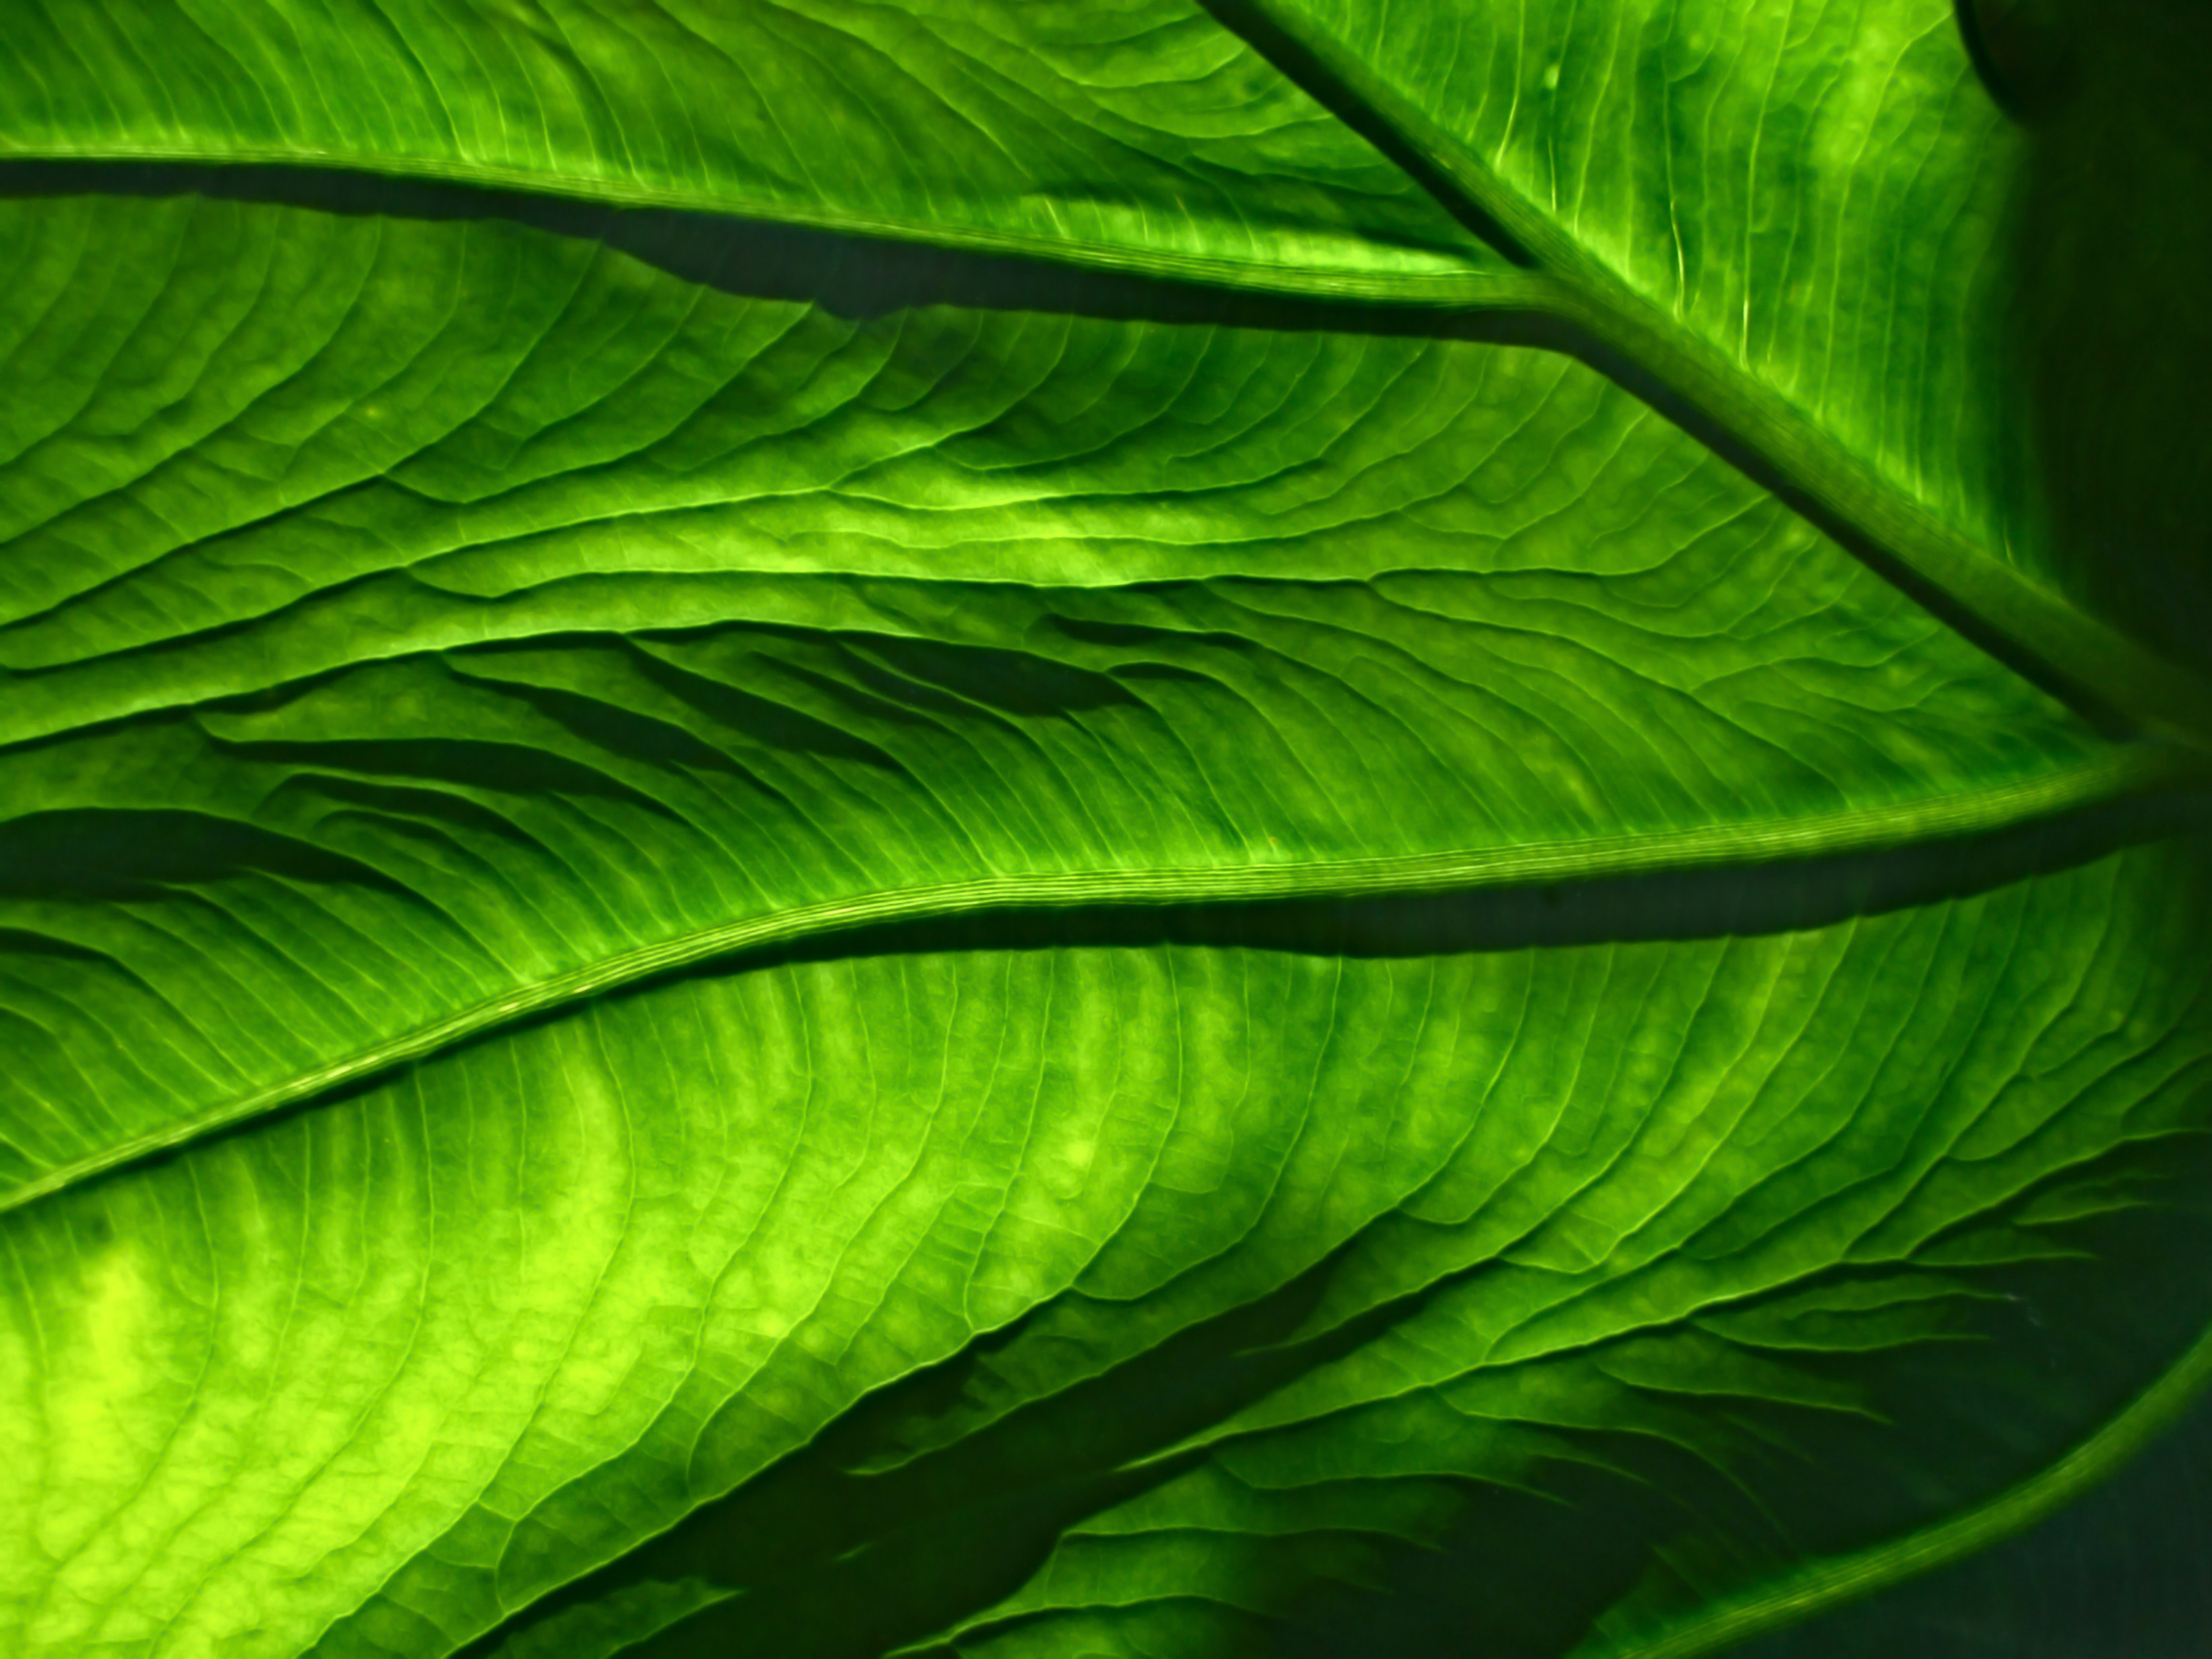 A macro shot of the veiny, translucent surface of a green leaf